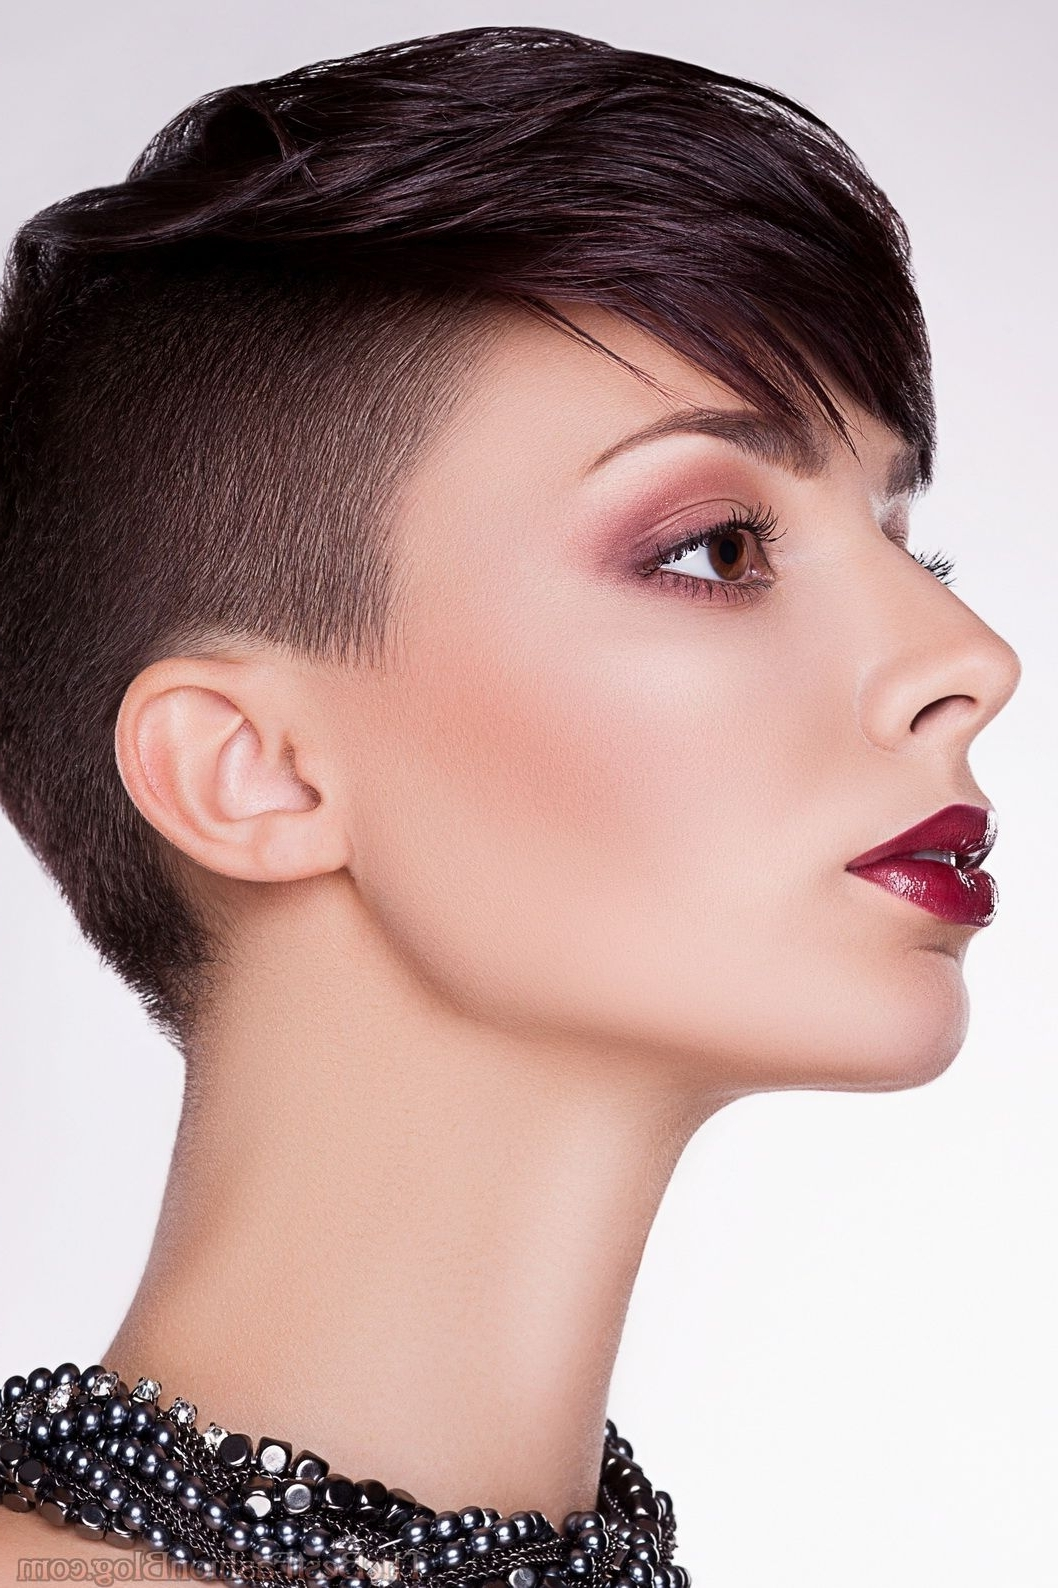 Pixie Haircuts For Women 2018 Within Most Up To Date Pixie Hairstyles With Long Sides (View 12 of 15)